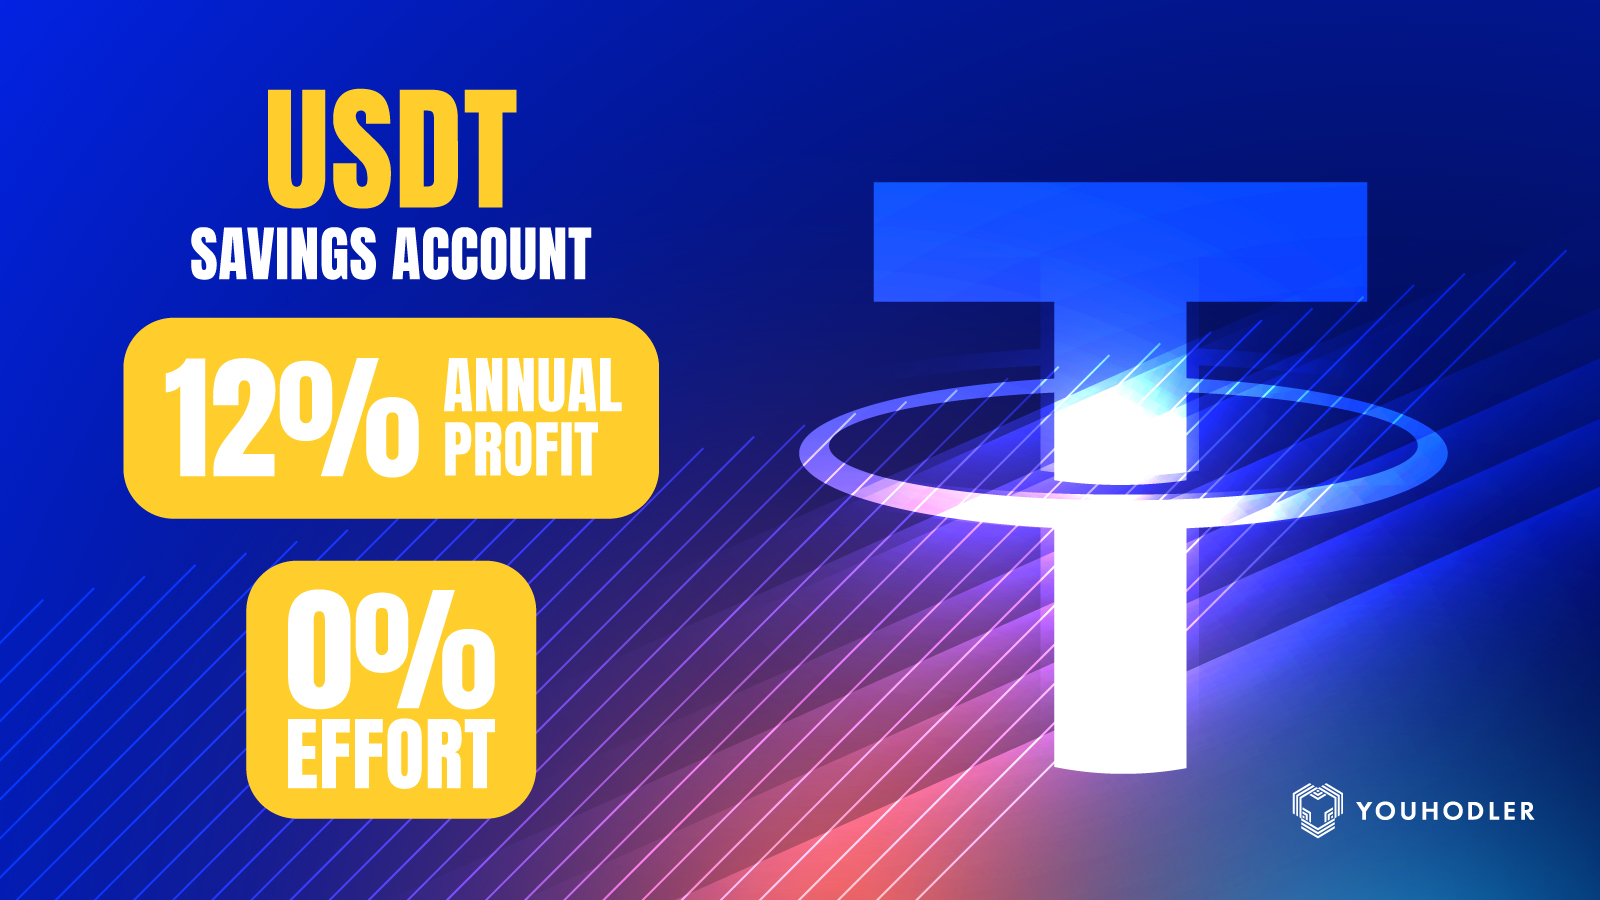 YouHodler's USDT Savings Account lets users deposit USDT into a wallet on the platform and earn up to 12% per year.